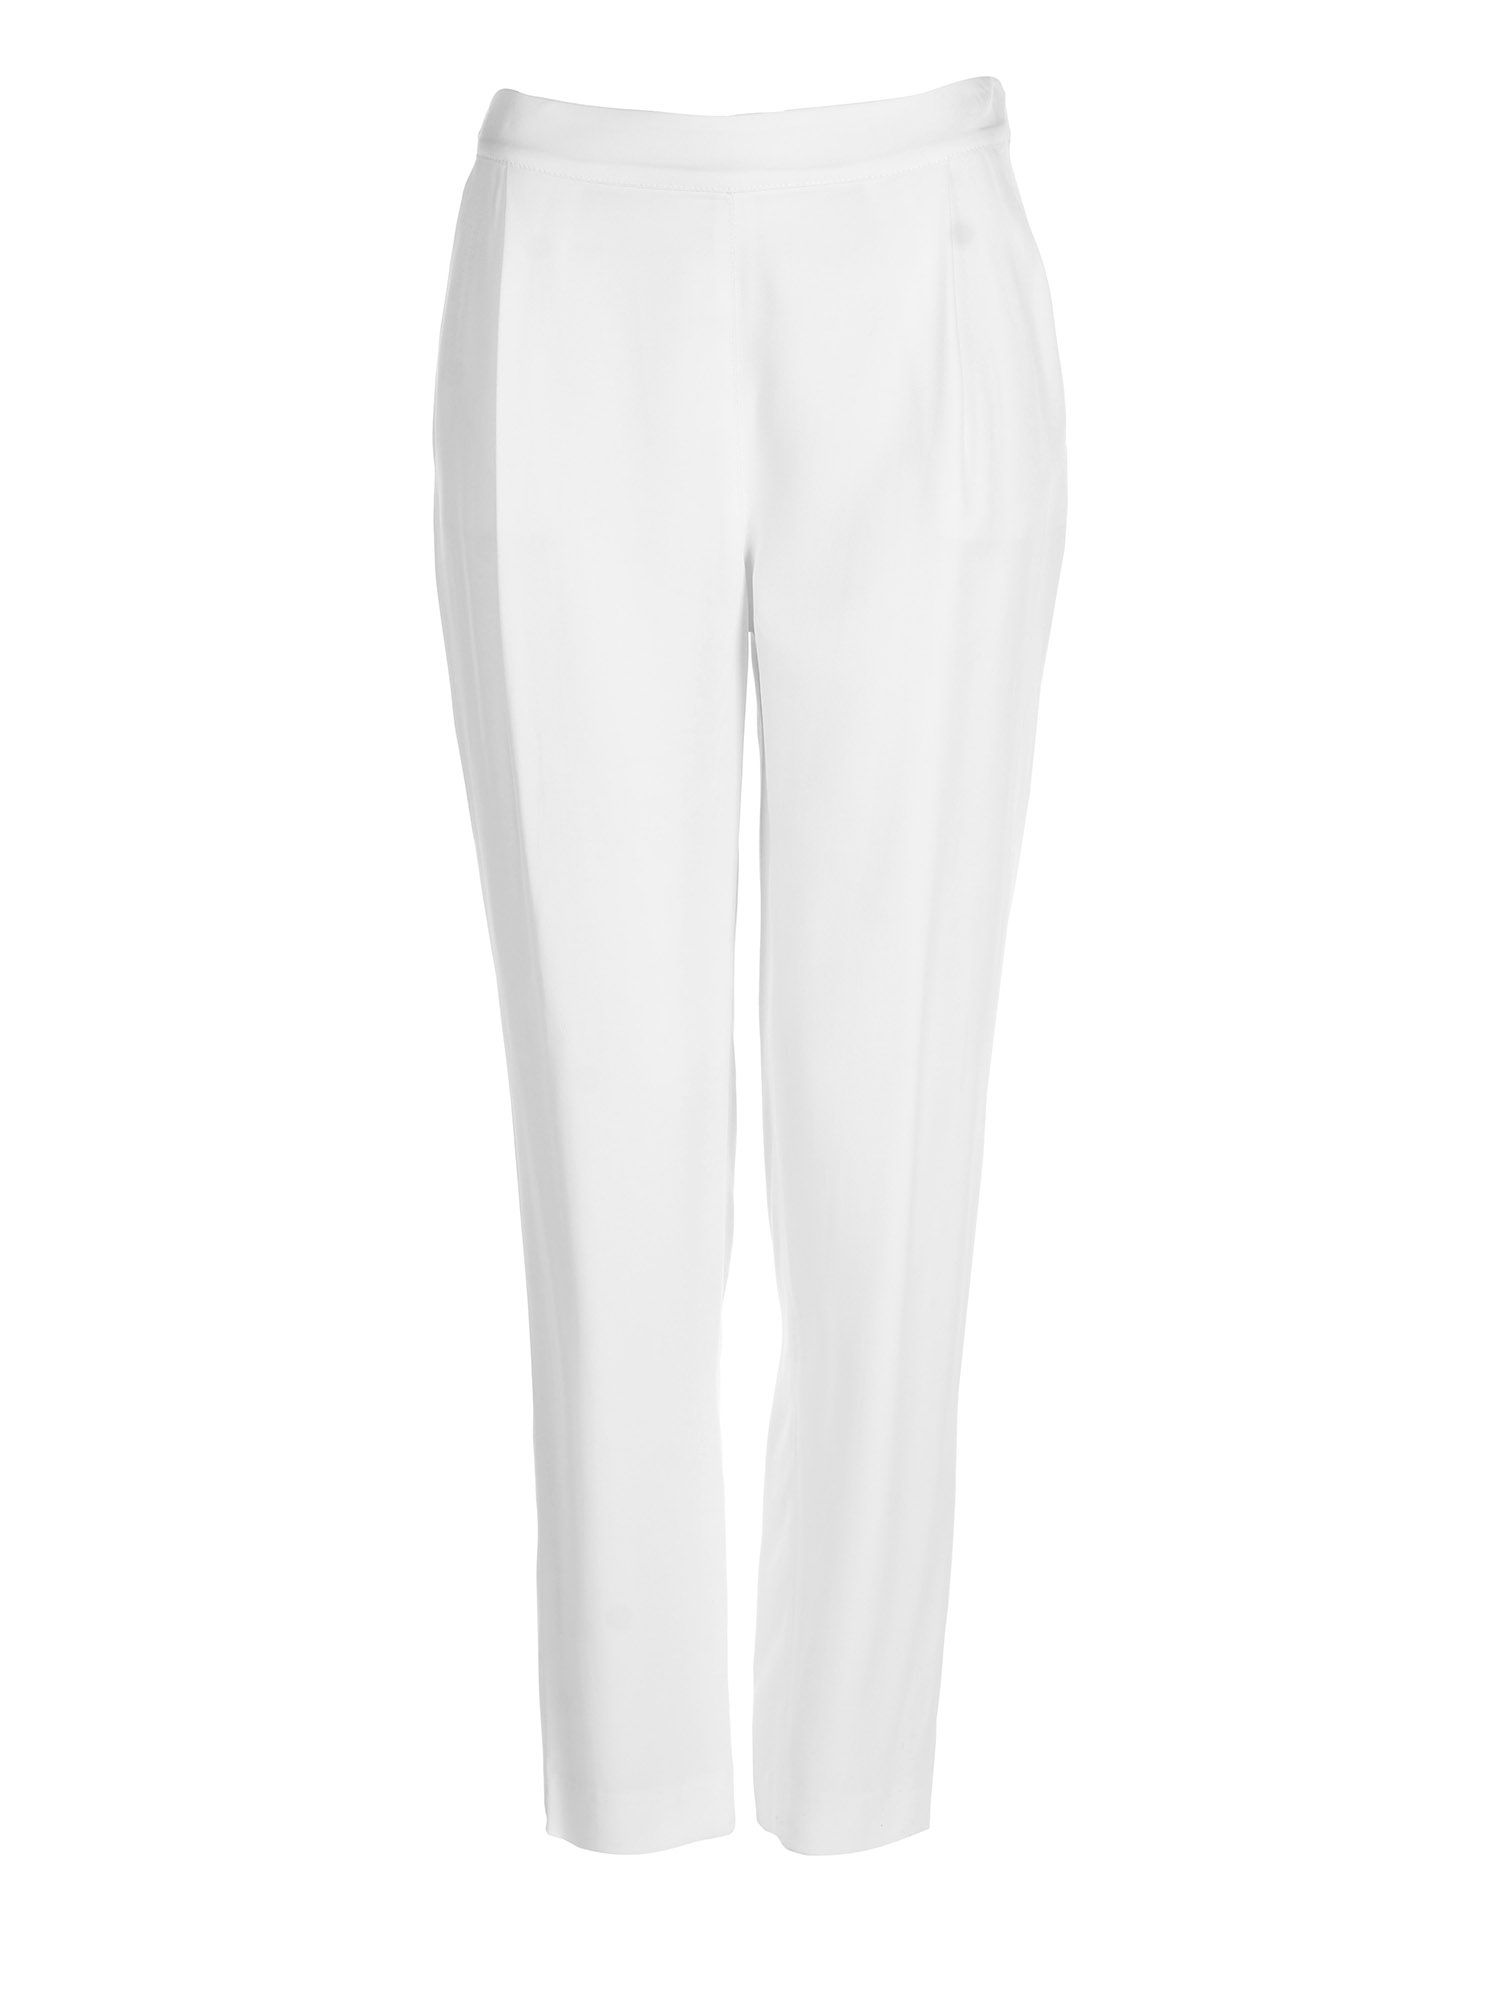 Stefanel Boyfriend Trouser, Cream